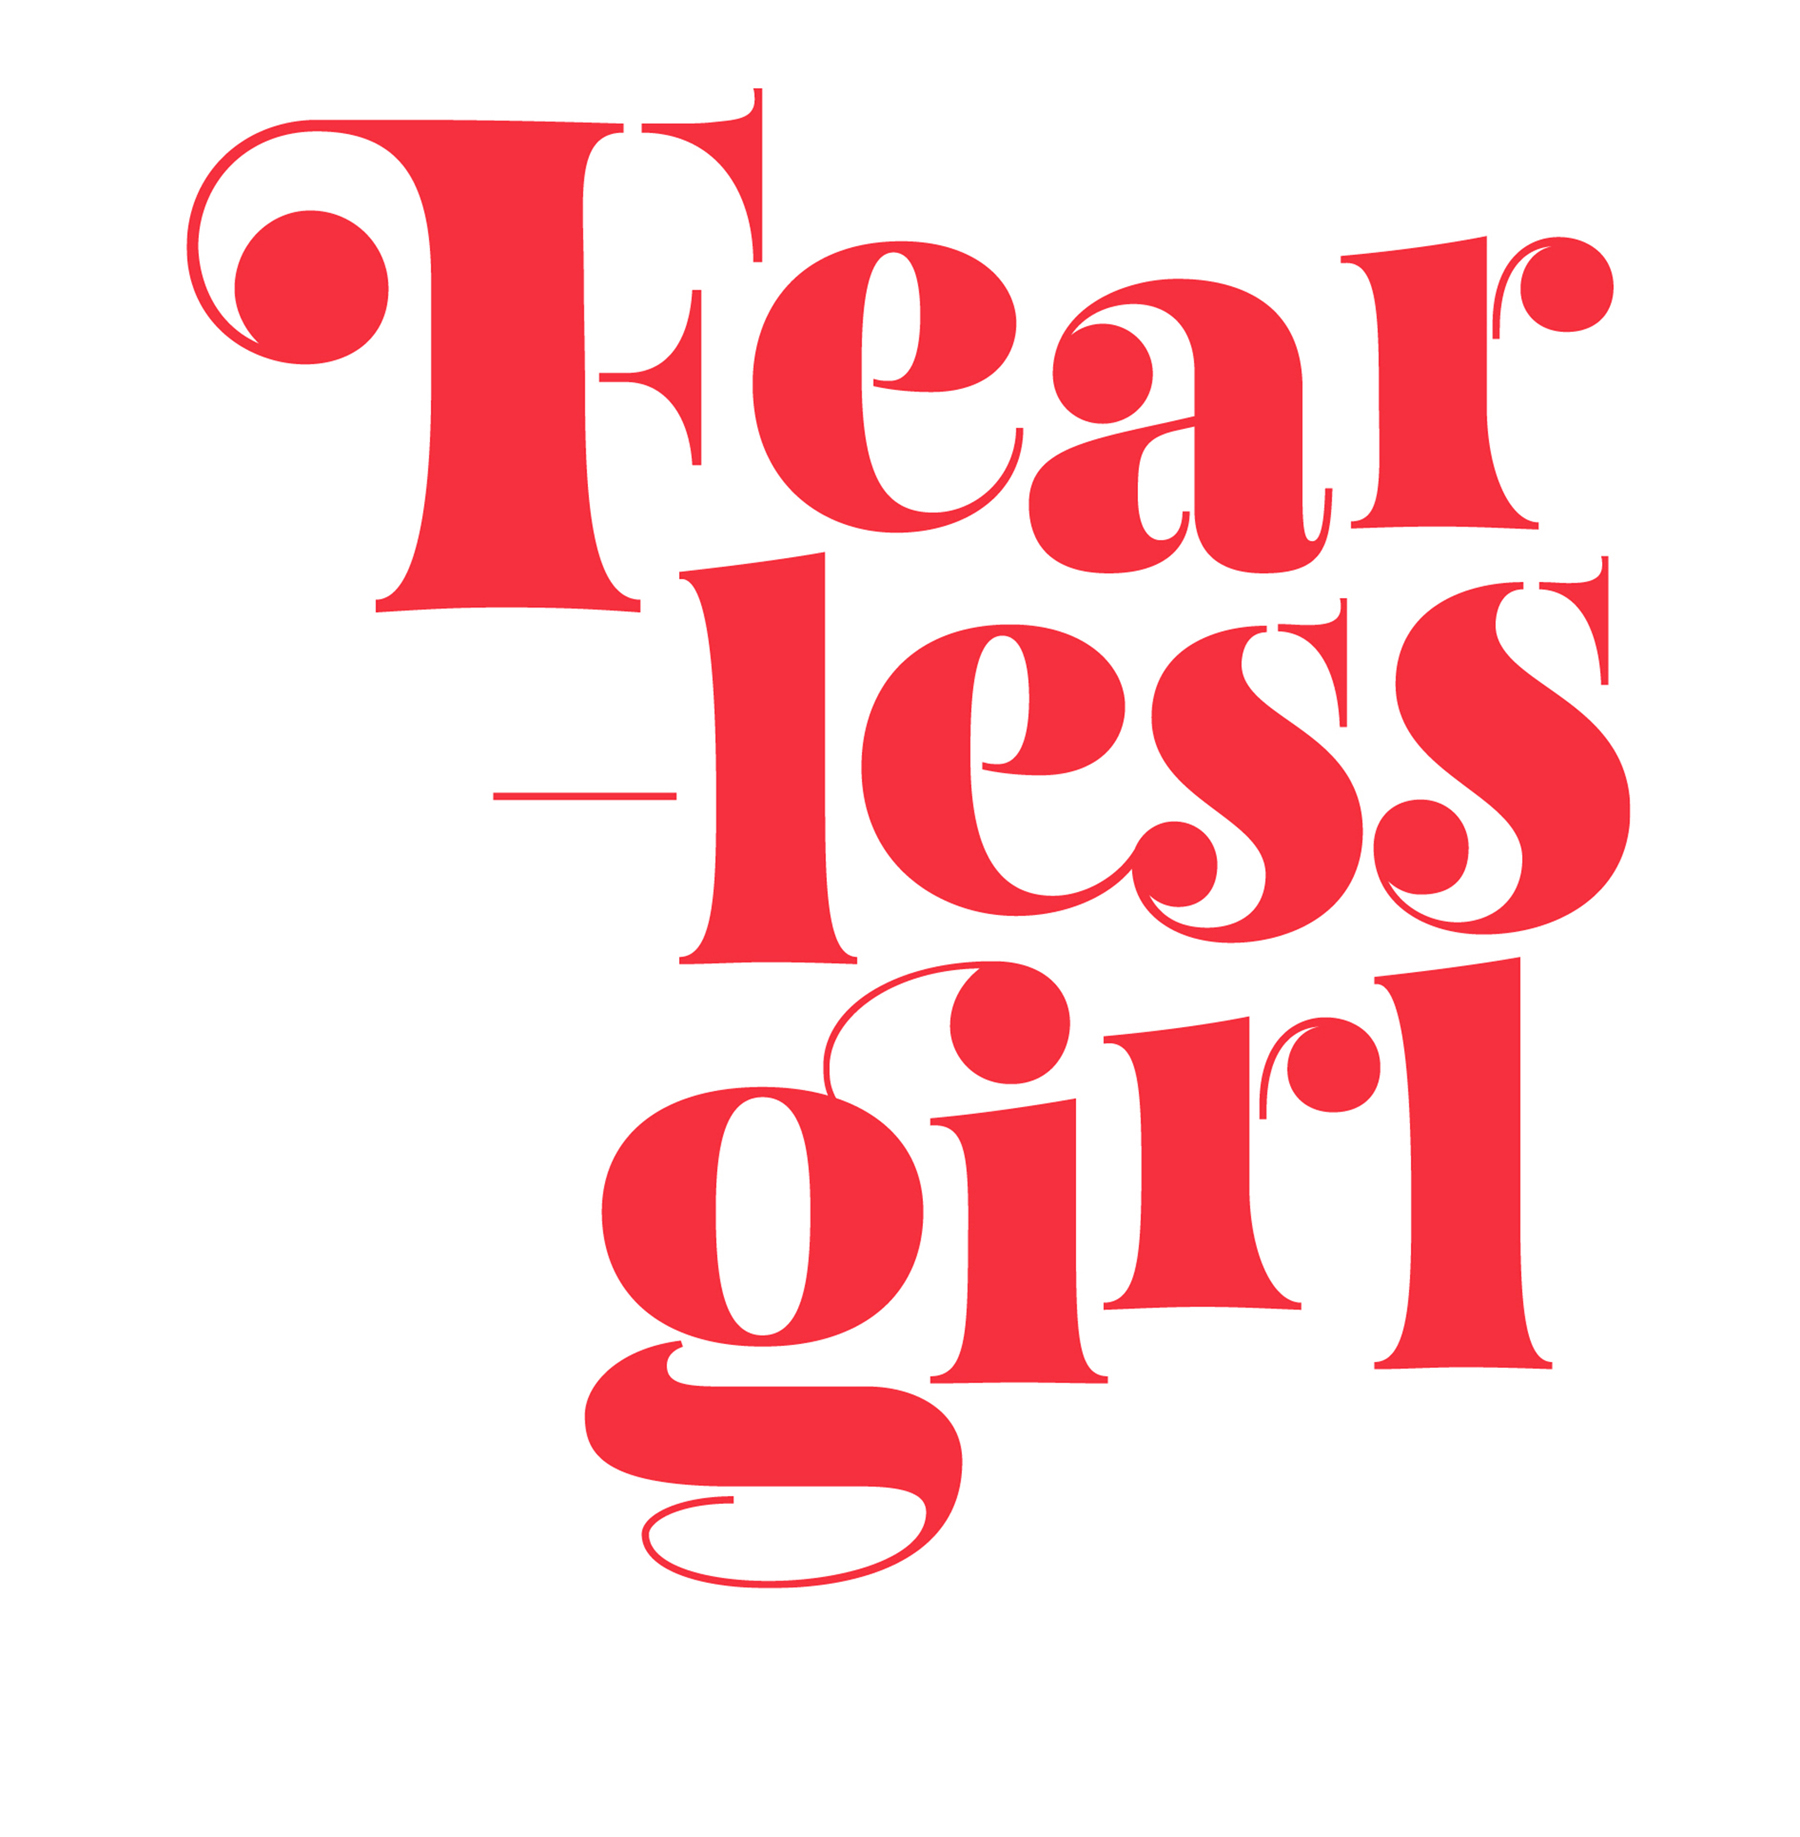 Custom Lettering: Fearless Girl